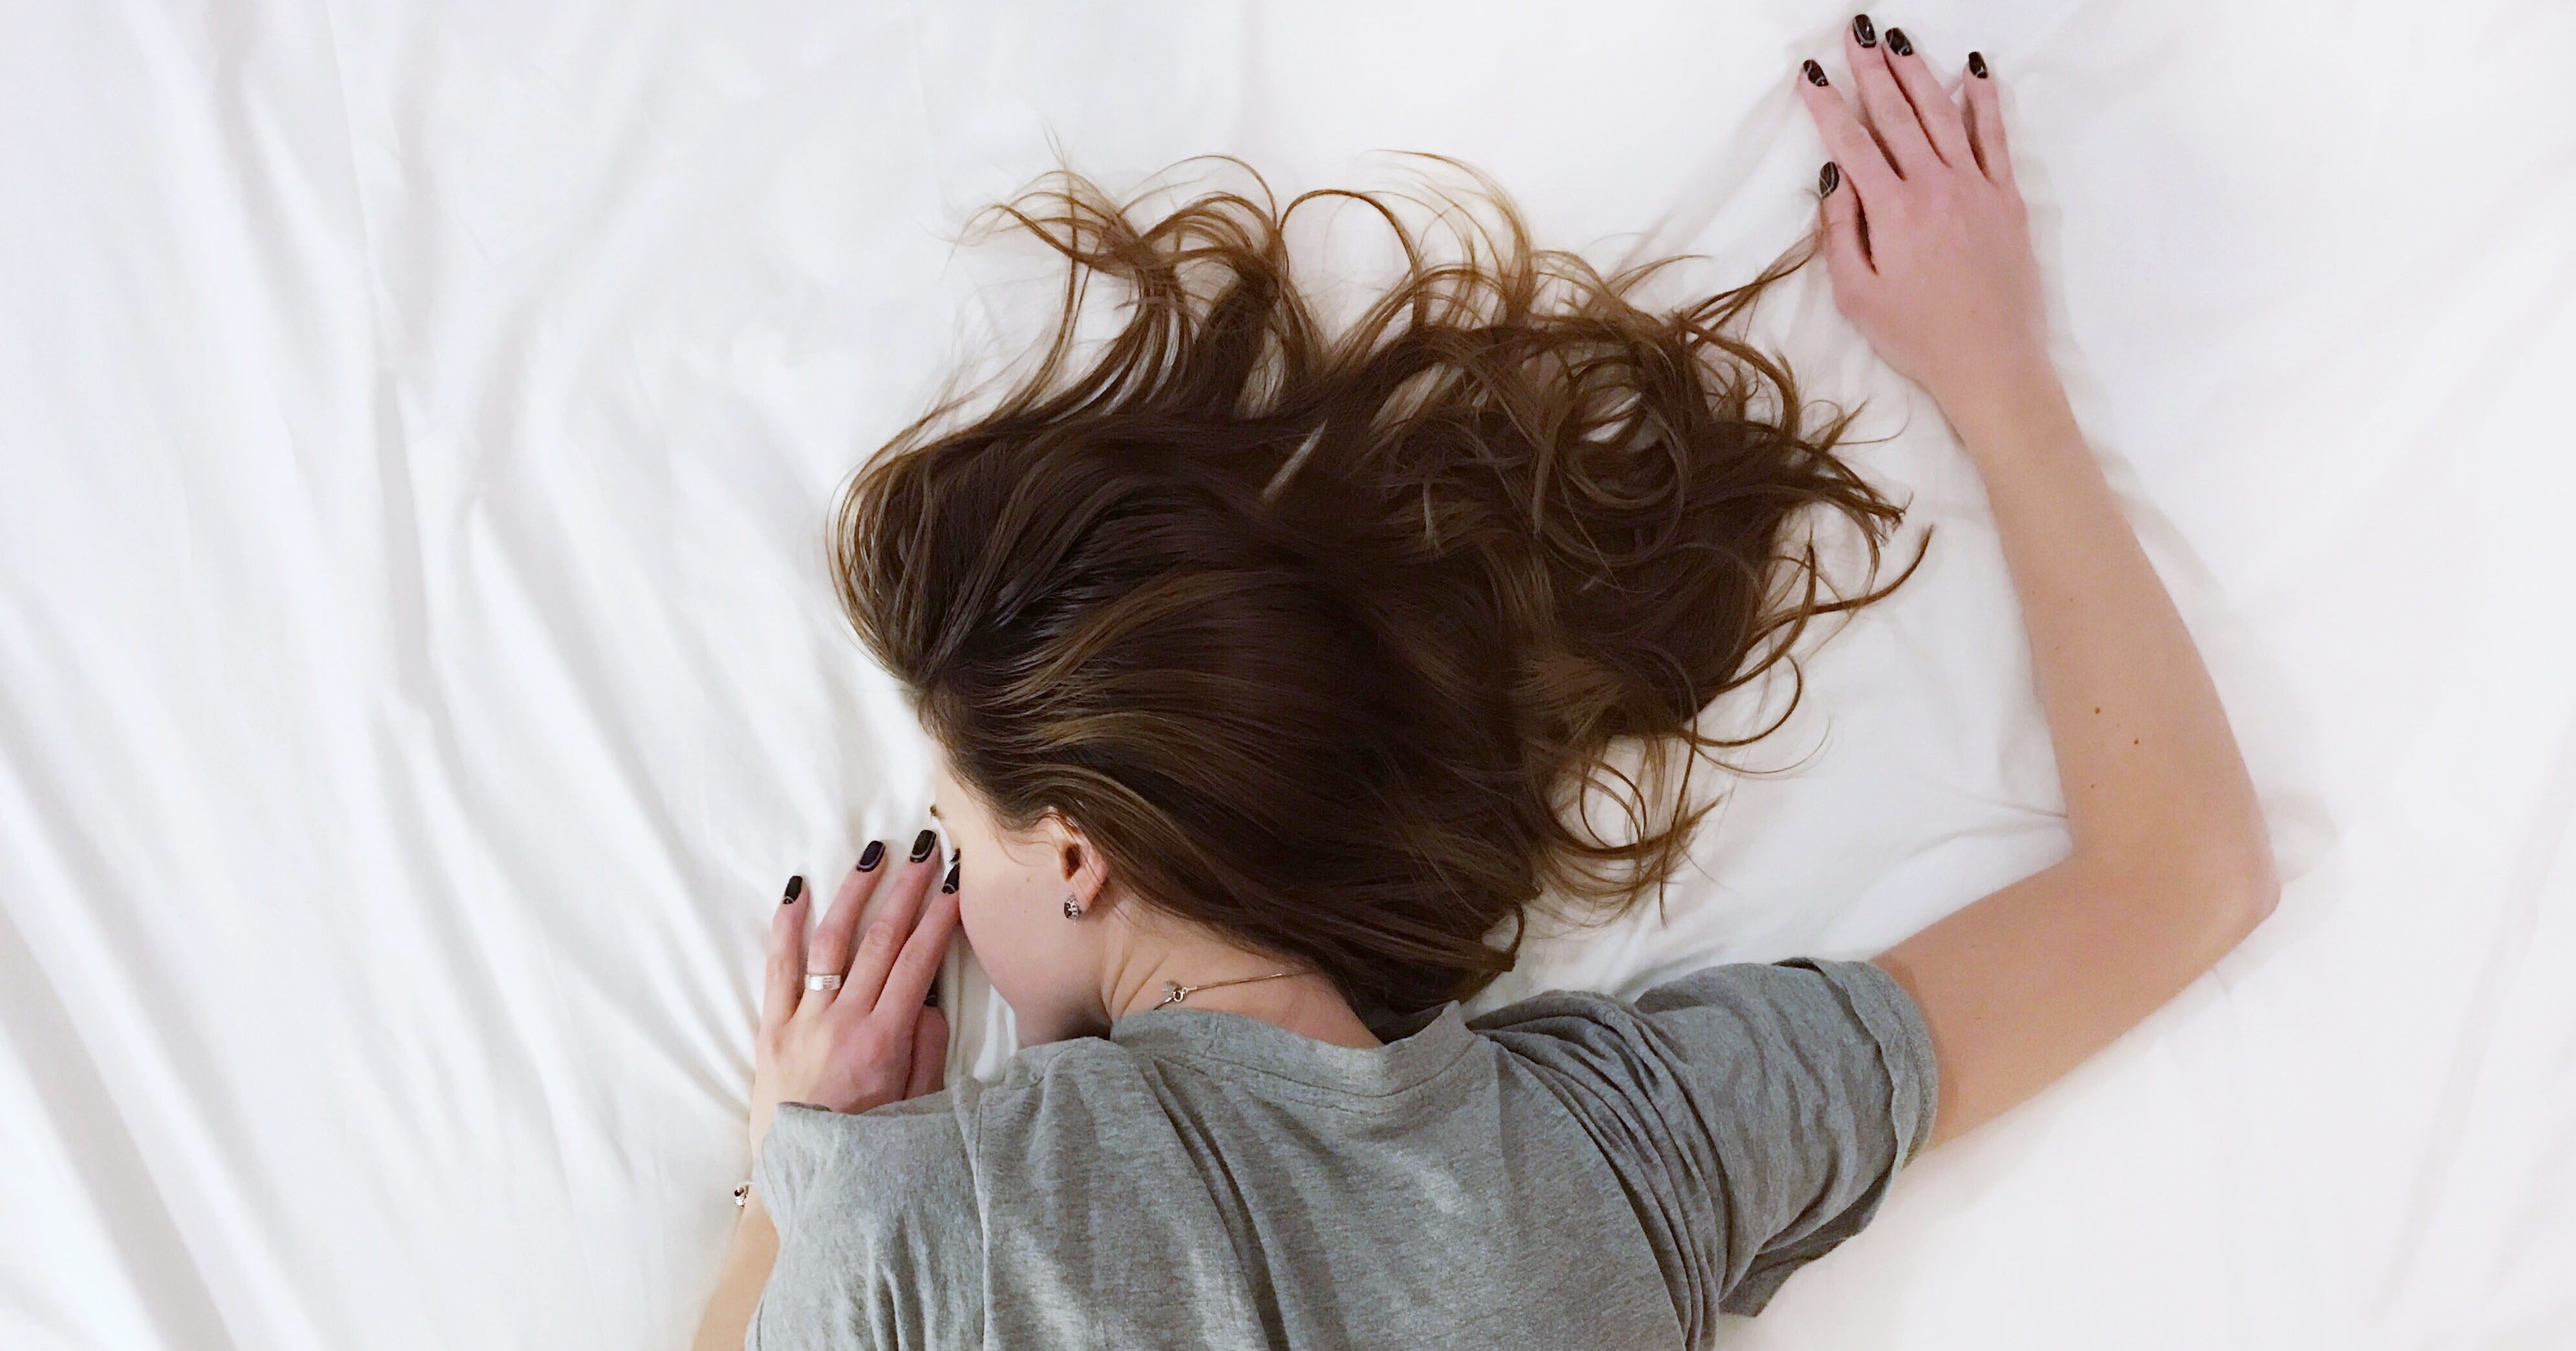 4 Incredible Things Happening to Your Brain During Sleep